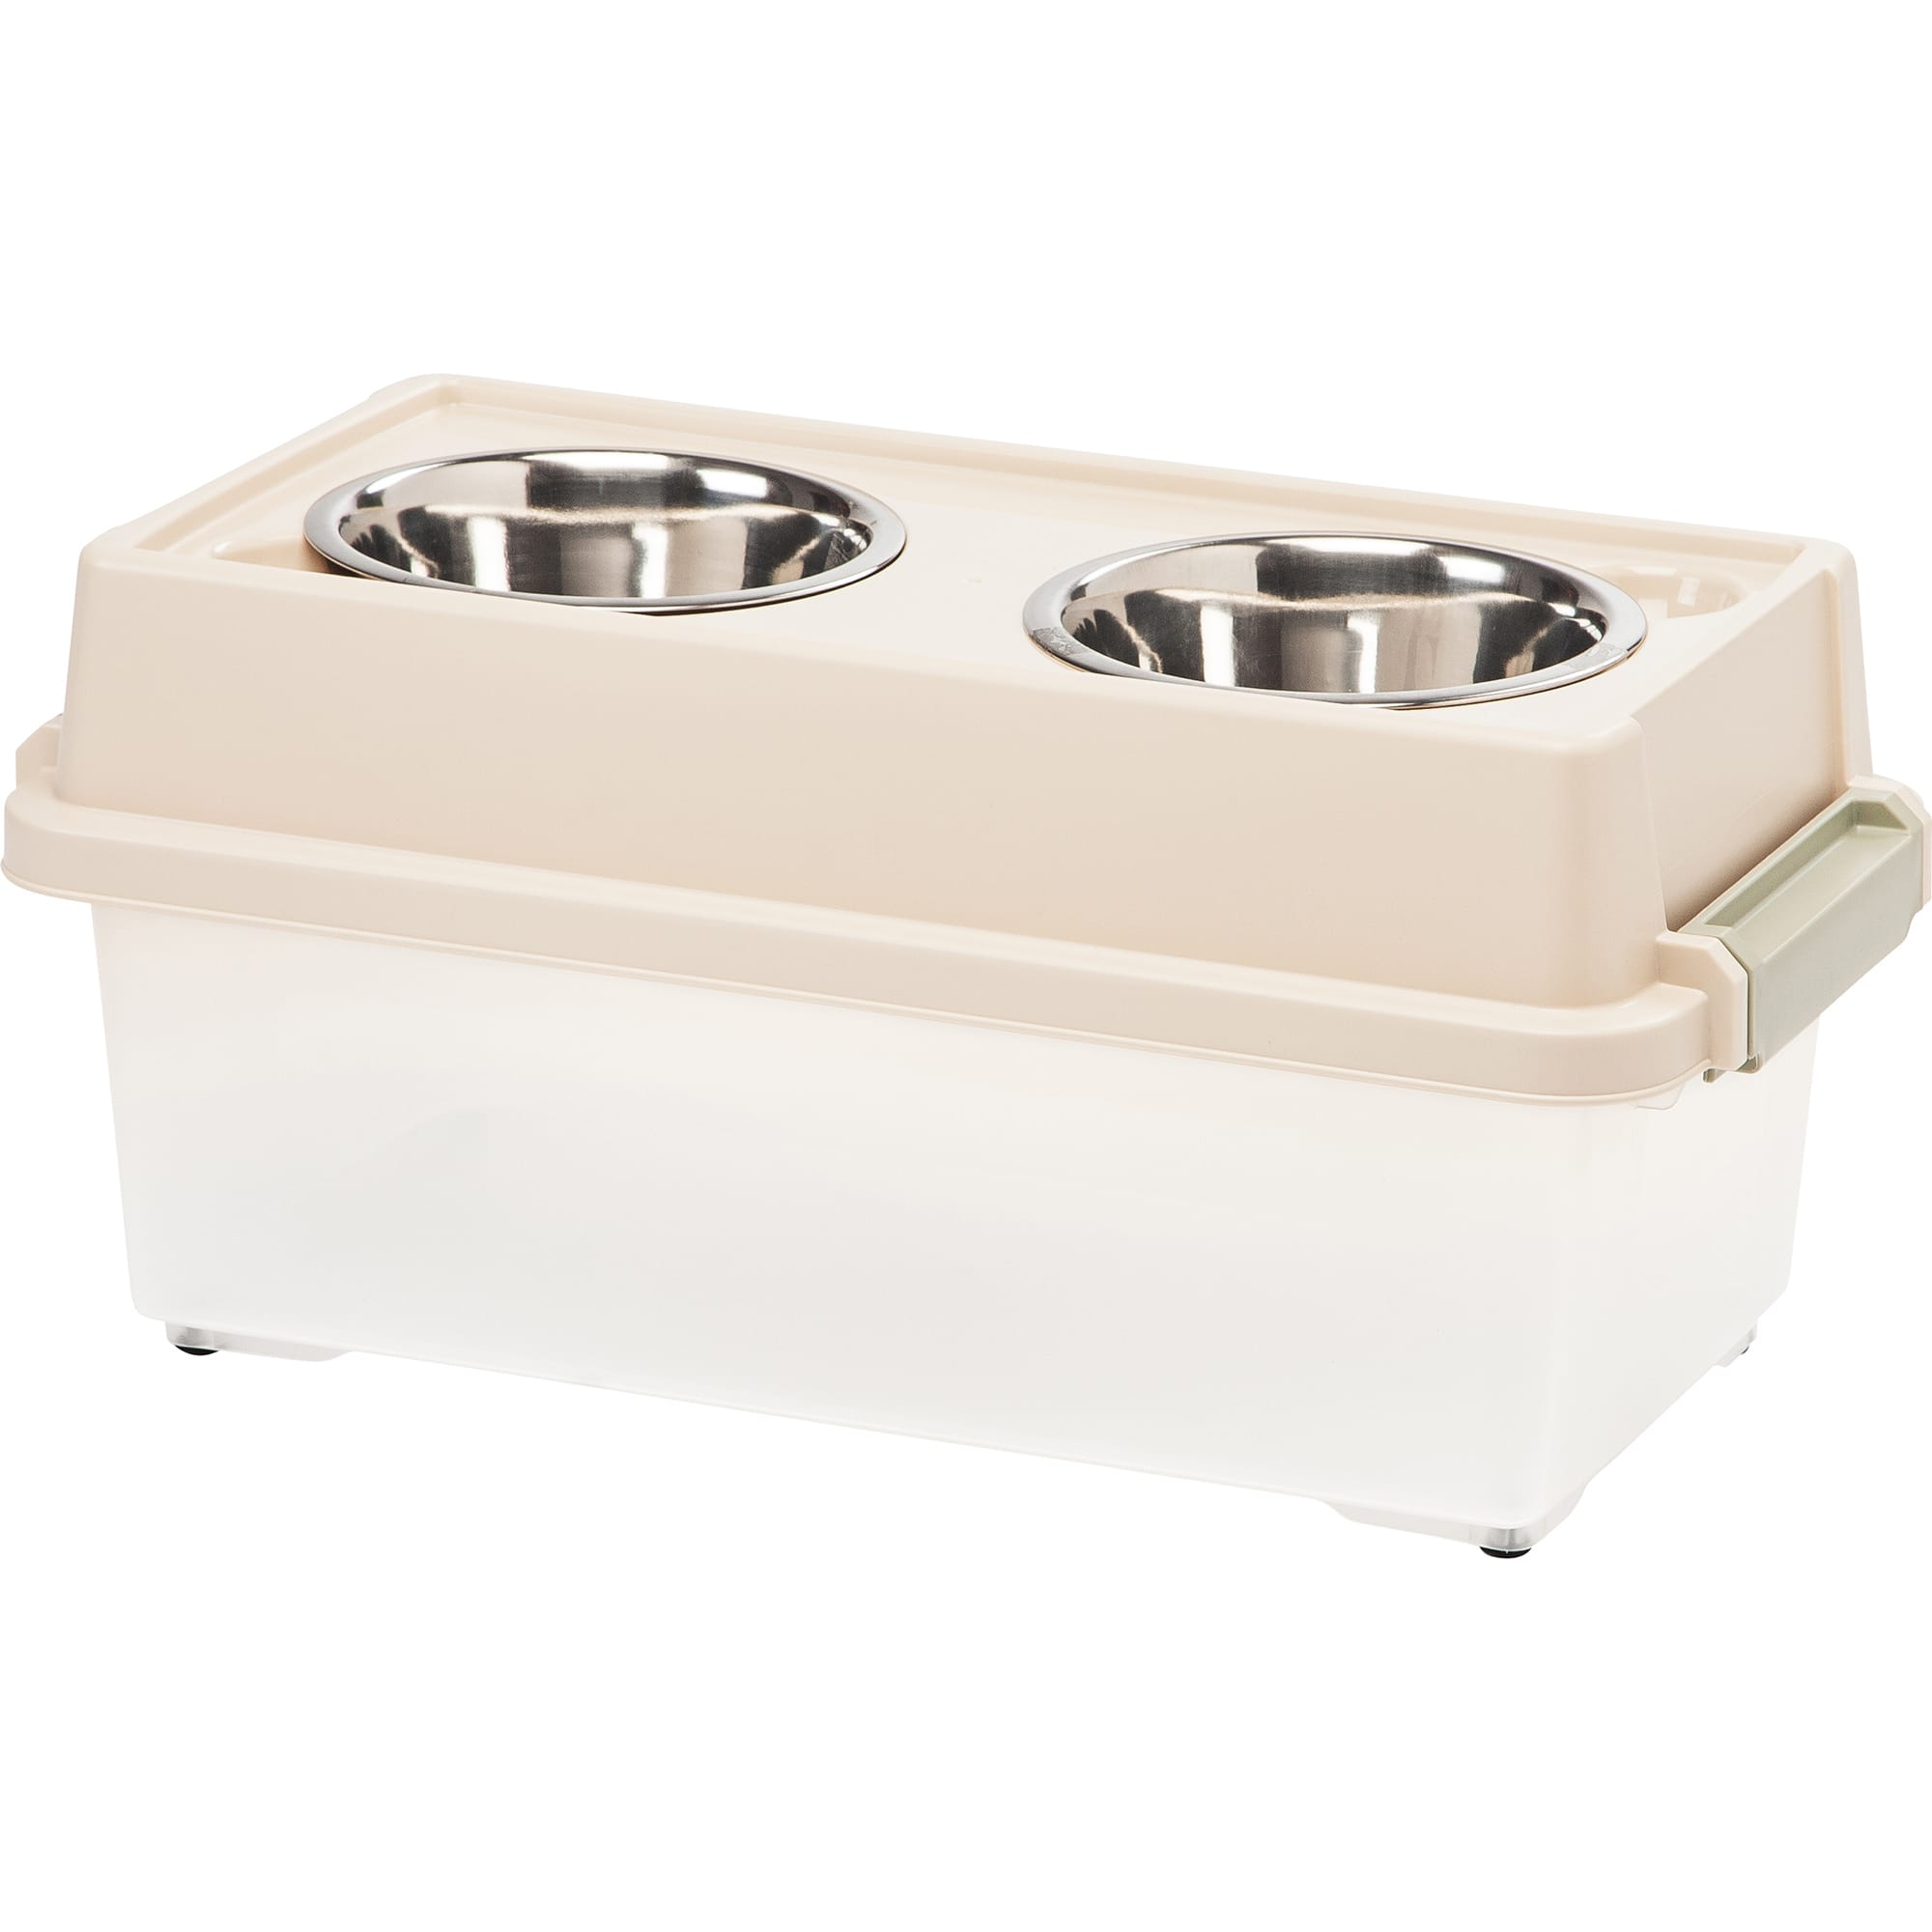 Iris Almond Elevated Double Diner with Airtight Food Storage Container for Dogs